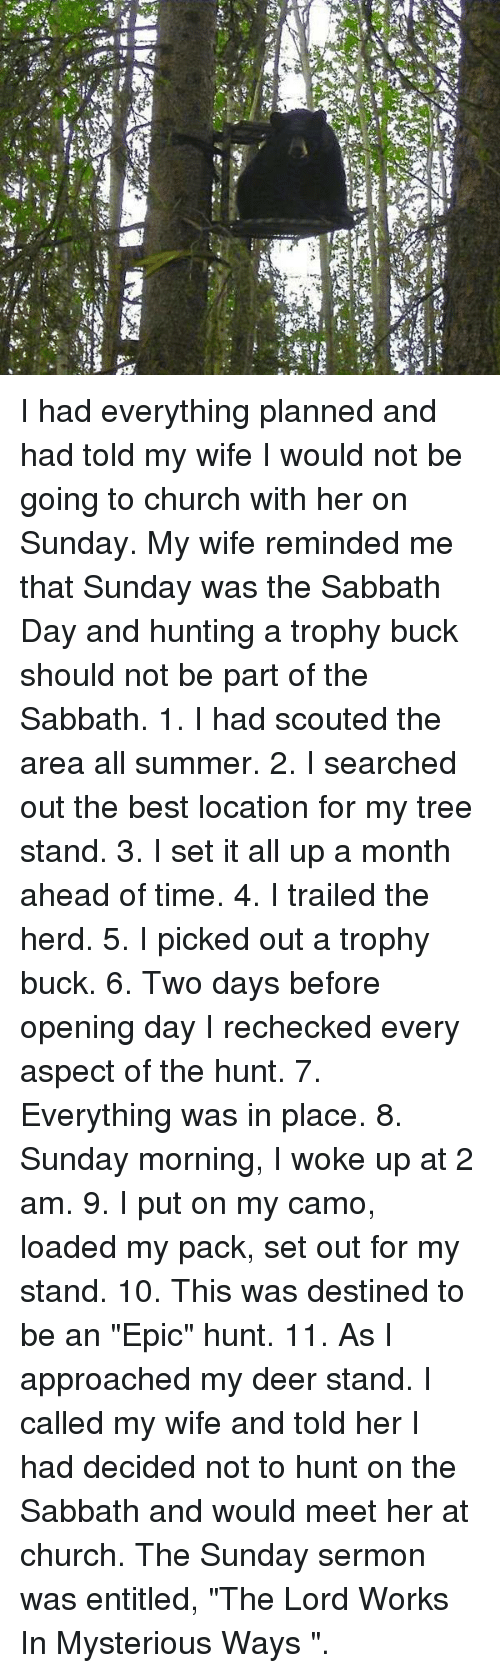 """sabbath: I had everything planned and had told my wife I would not be going to church with her on Sunday. My wife reminded me that Sunday was the Sabbath Day and hunting a trophy buck should not be part of the Sabbath.   1. I had scouted the area all summer.   2. I searched out the best location for my tree stand.   3. I set it all up a month ahead of time.   4. I trailed the herd.   5. I picked out a trophy buck.   6. Two days before opening day I rechecked every aspect of the hunt.   7. Everything was in place.   8. Sunday morning, I woke up at 2 am.   9. I put on my camo, loaded my pack, set out for my stand.   10. This was destined to be an """"Epic"""" hunt.   11. As I approached my deer stand.    I called my wife and told her I had decided not to hunt on the Sabbath and would meet her at church. The Sunday sermon was entitled, """"The Lord Works In Mysterious Ways """"."""